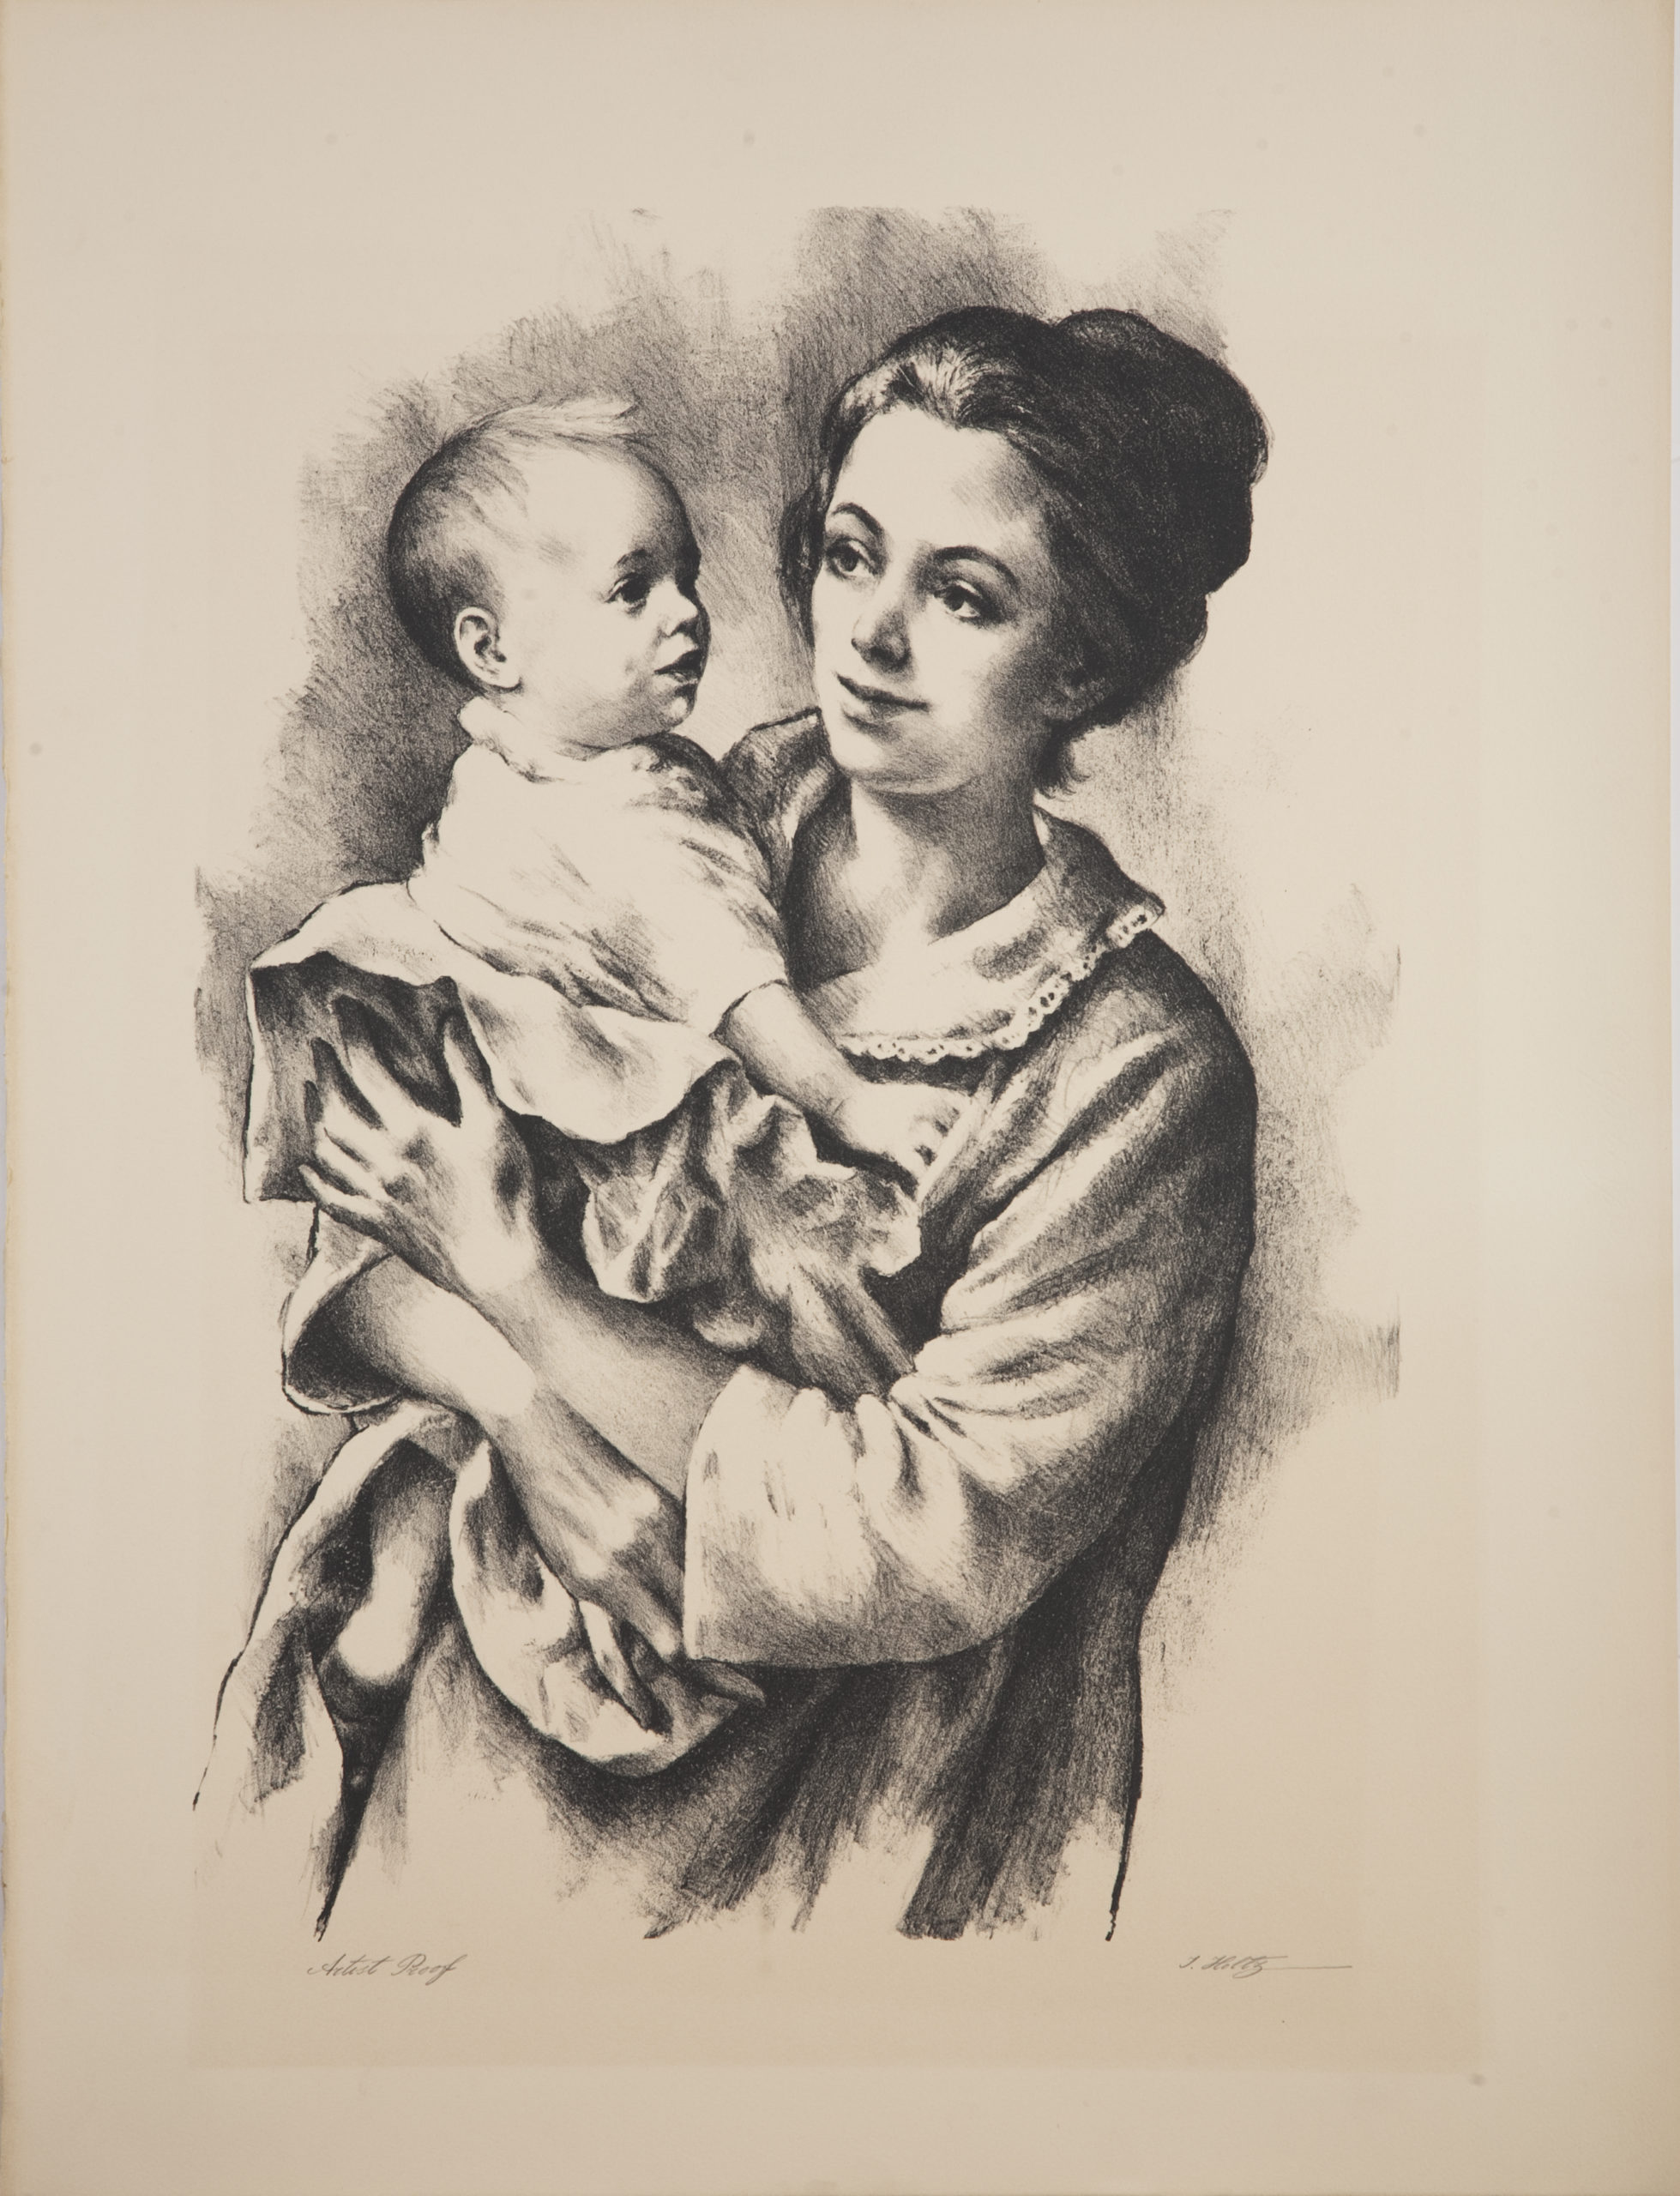 L01B Mother & Child - Black and White - Lithograph - 22 x 29 - No Frame - $500